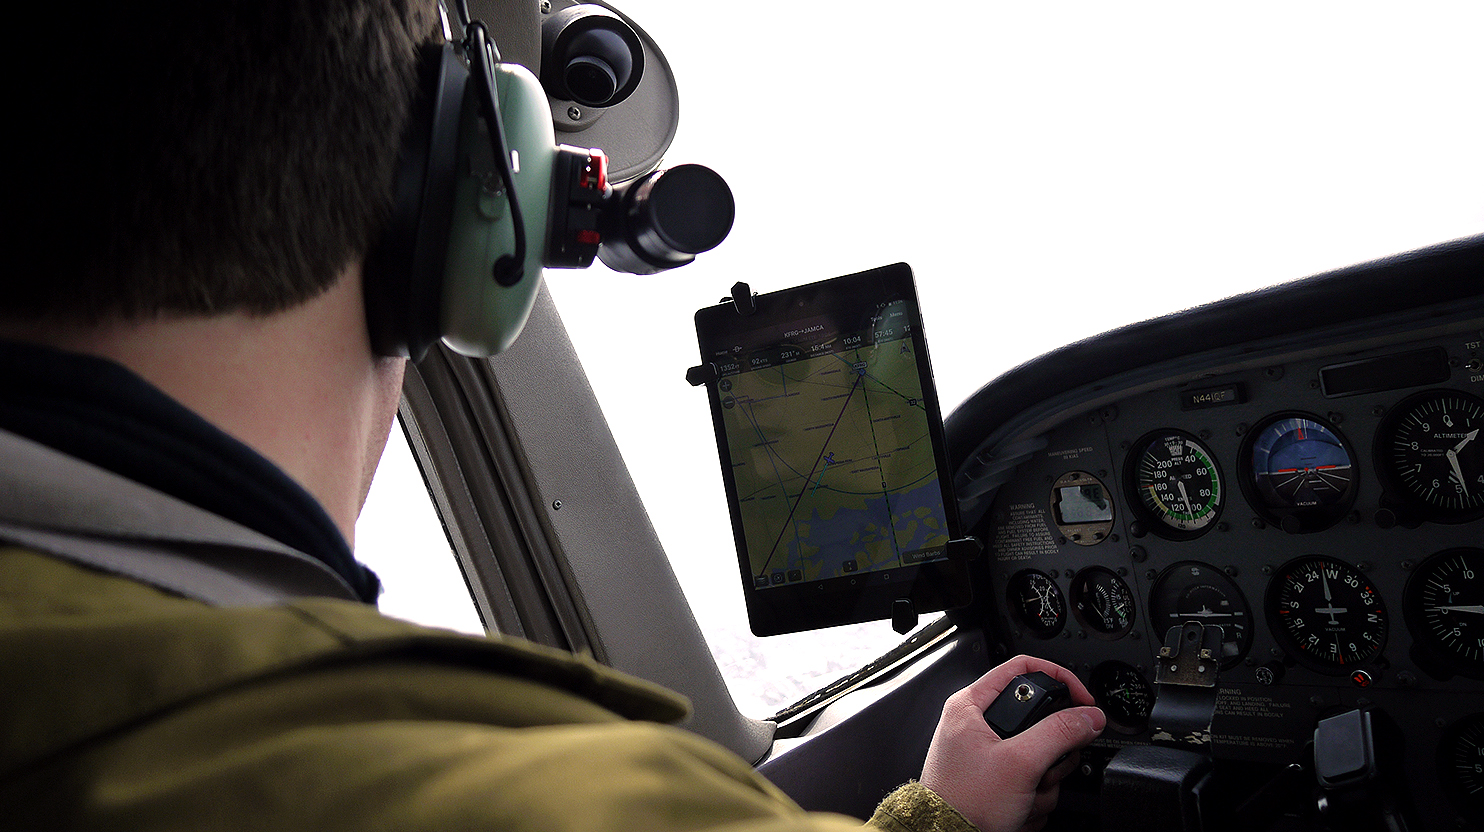 Lost pilot using foreflight to navigate airplane gets lost. Civil Air Patrol Cessnas respond to find the pilot, wearing David Clark headsets in his airplane.